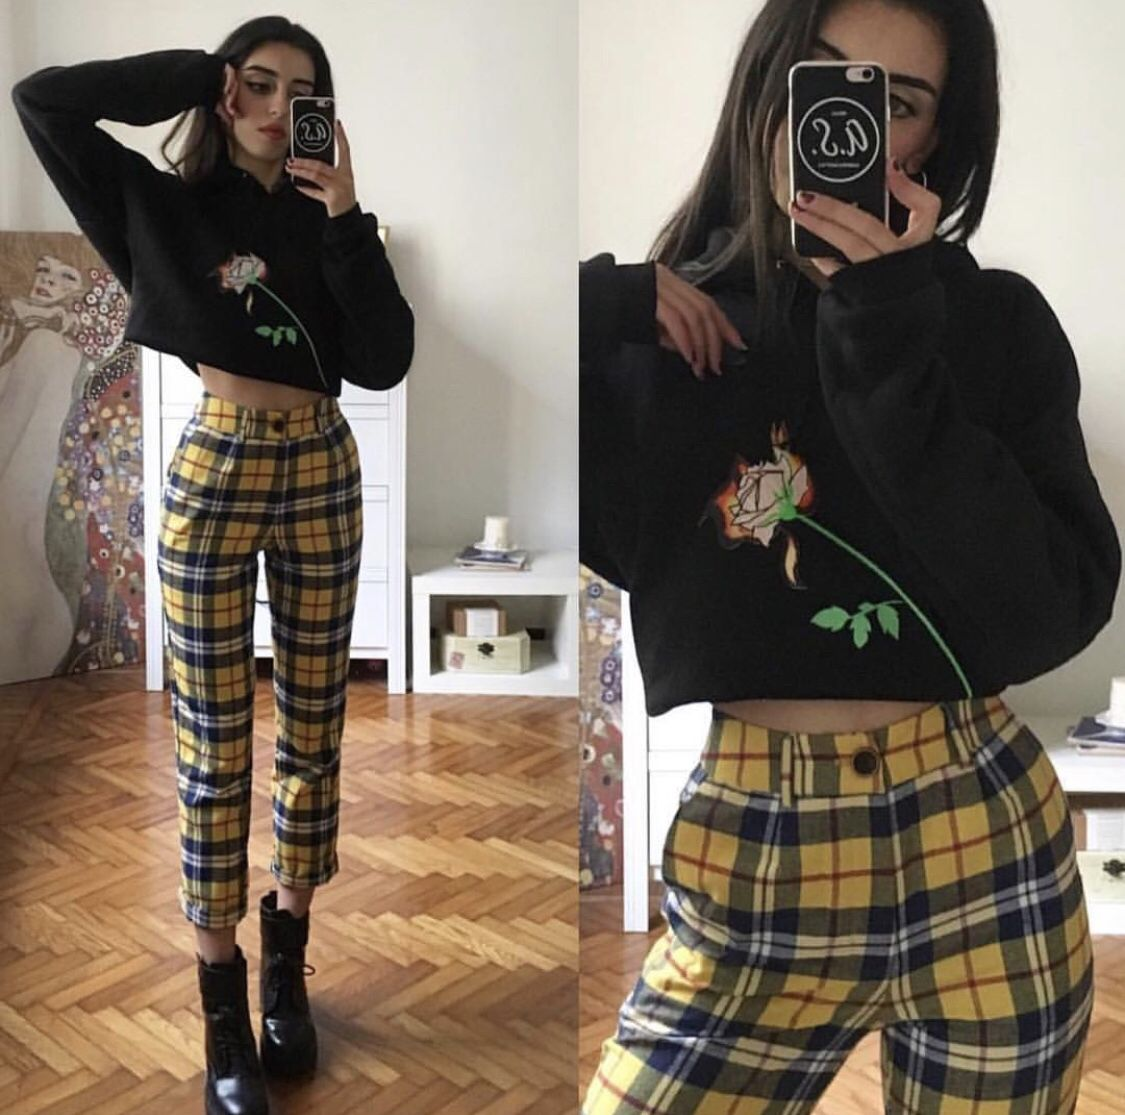 My Love Is On Fire 90s Inspired Outfits 80s Inspired Outfits 90s Fashion Outfits